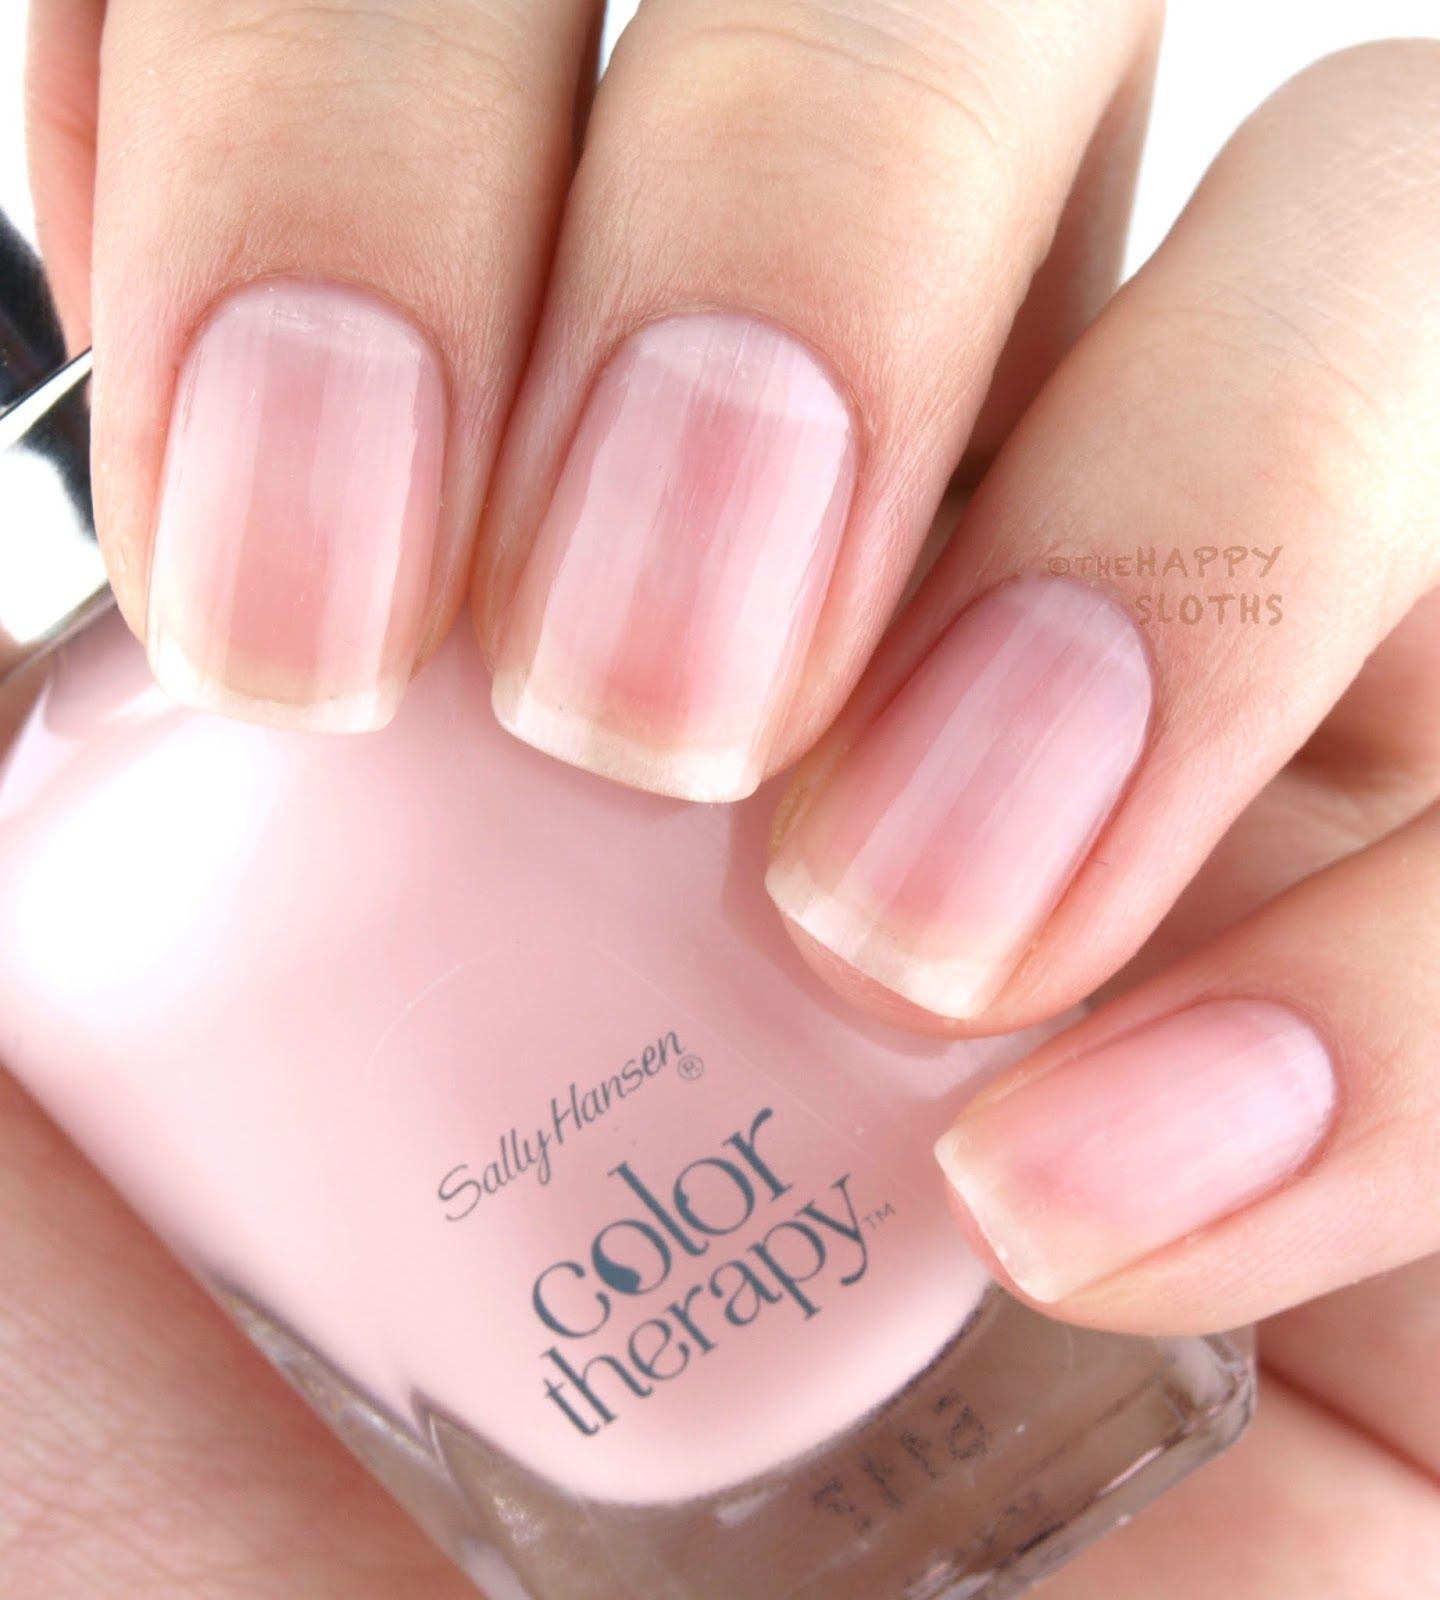 Colour therapy for beauty - The Happy Sloths Sally Hansen Color Therapy Nail Polish Review And Swatches